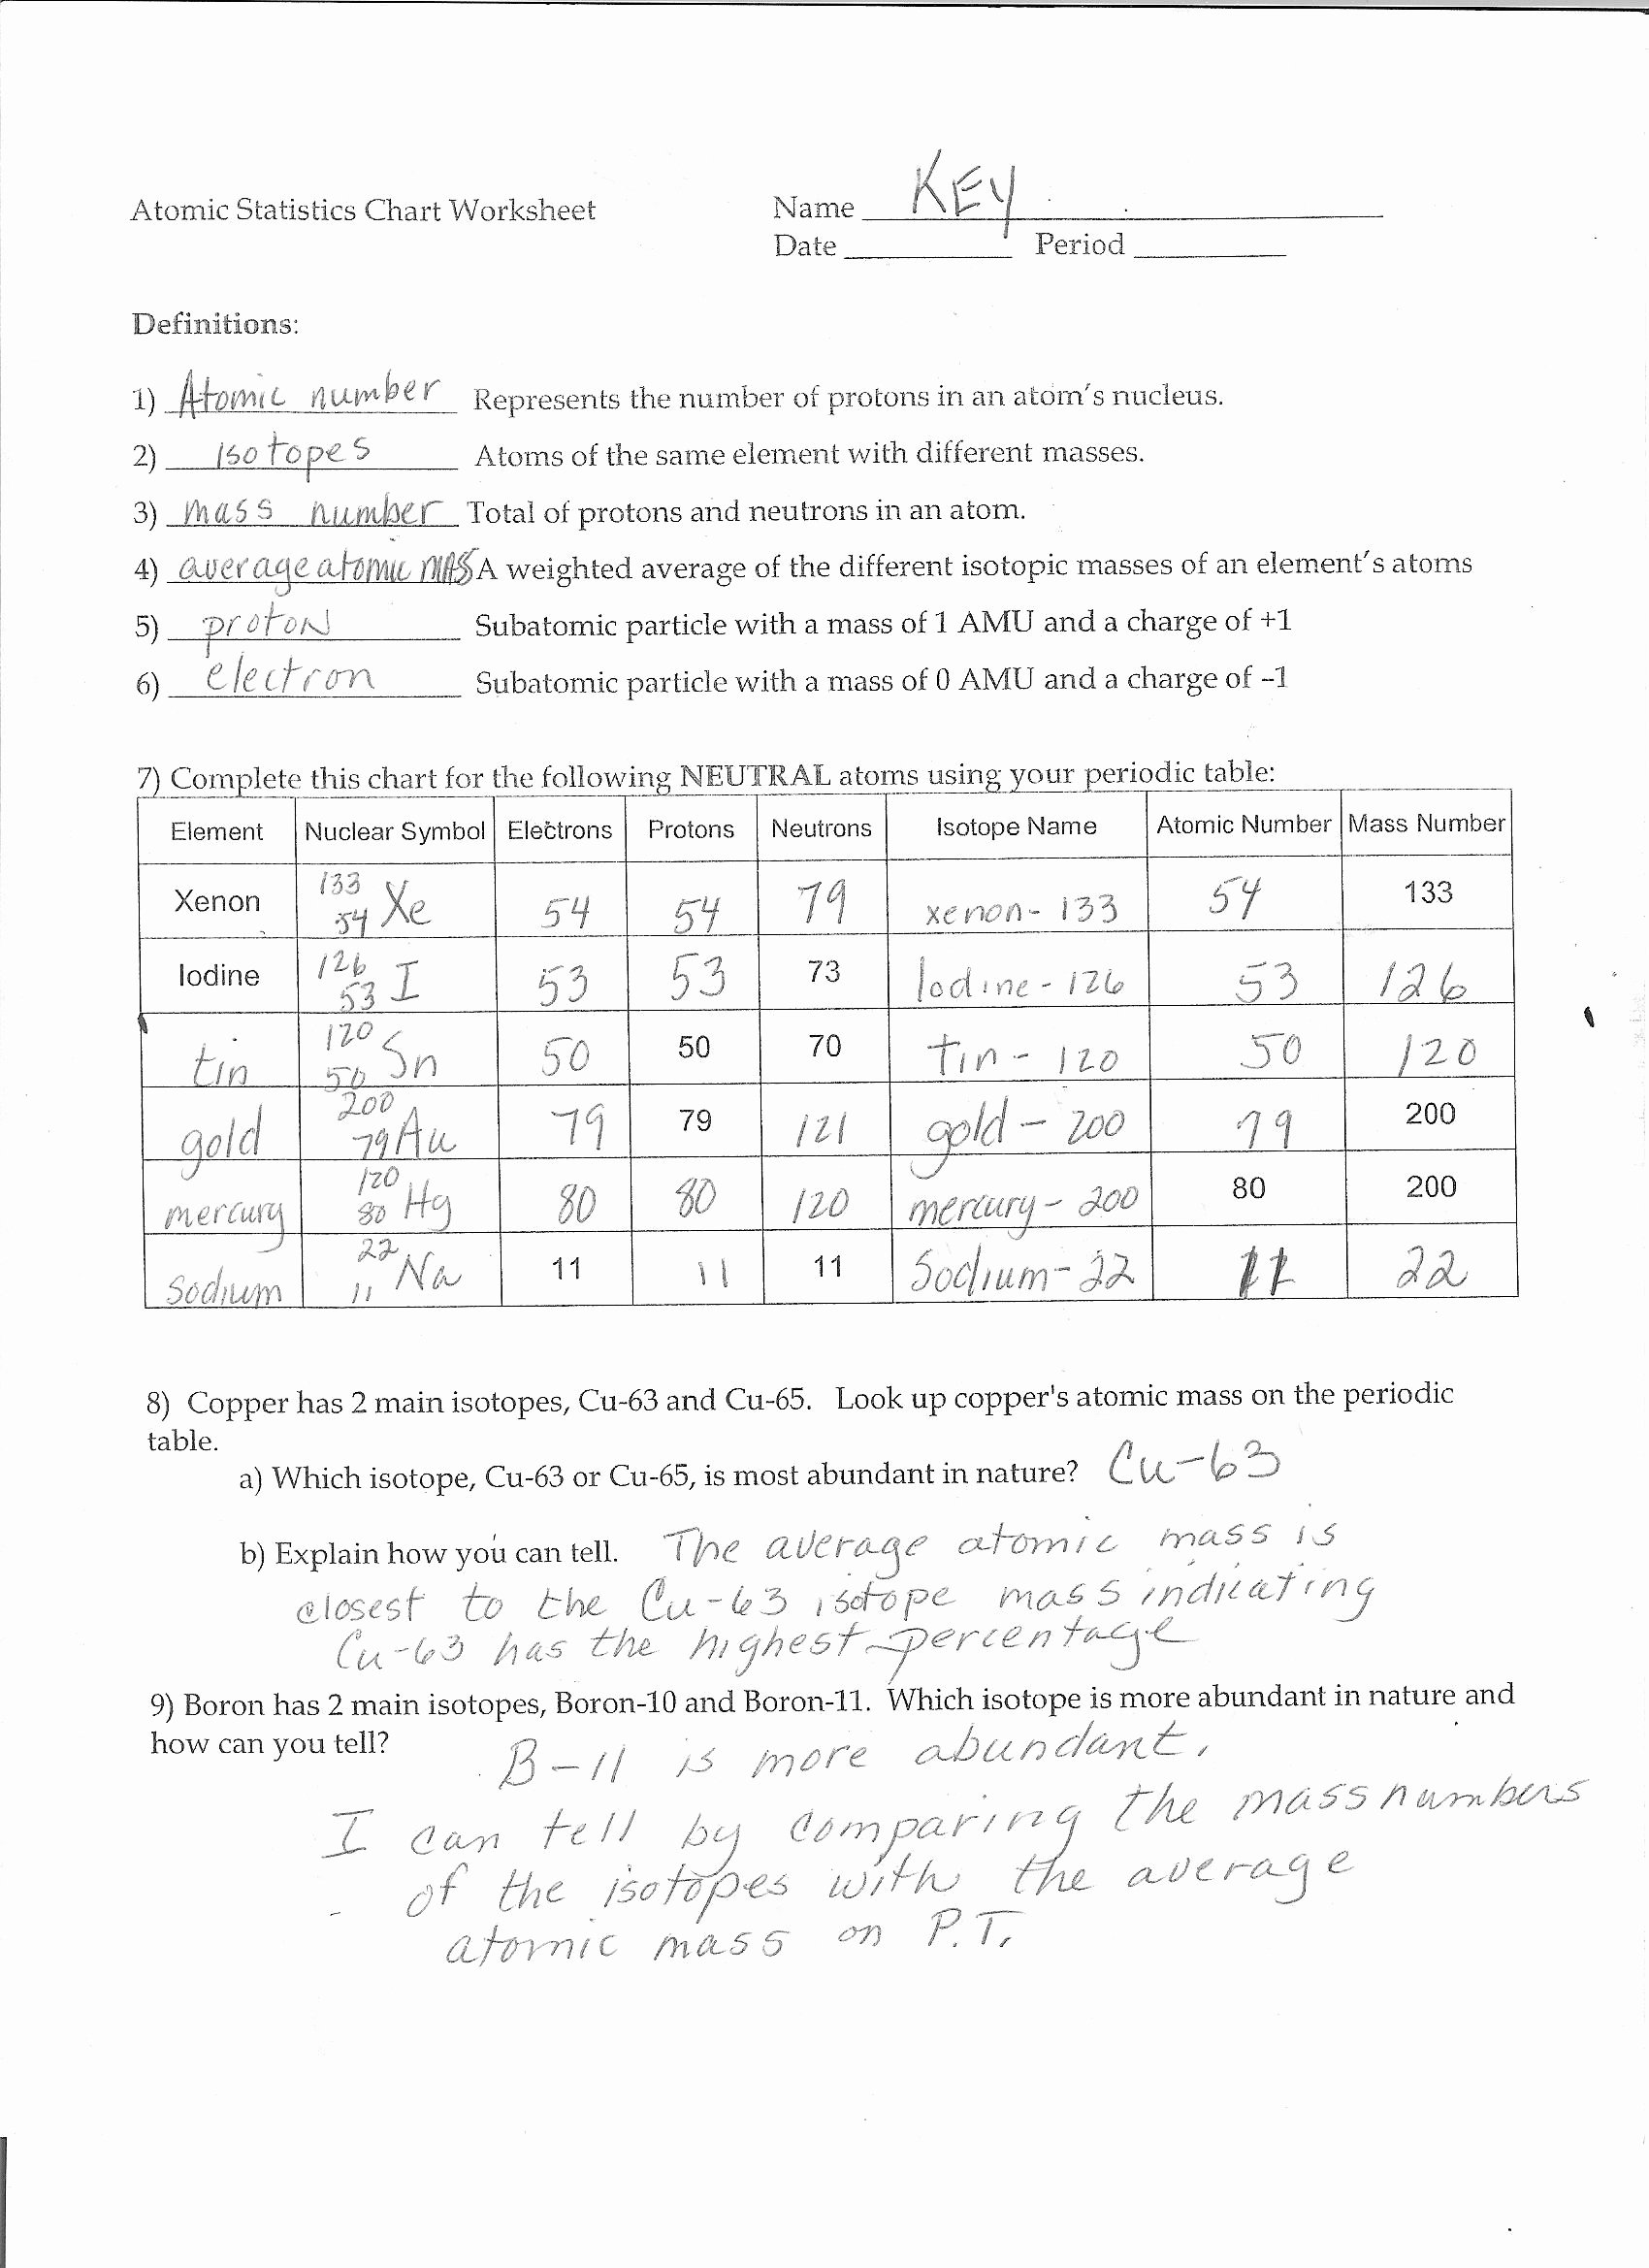 Atomic Structure Worksheet Chemistry Elegant isotopes Ions and atoms Worksheet 2 Answer Key